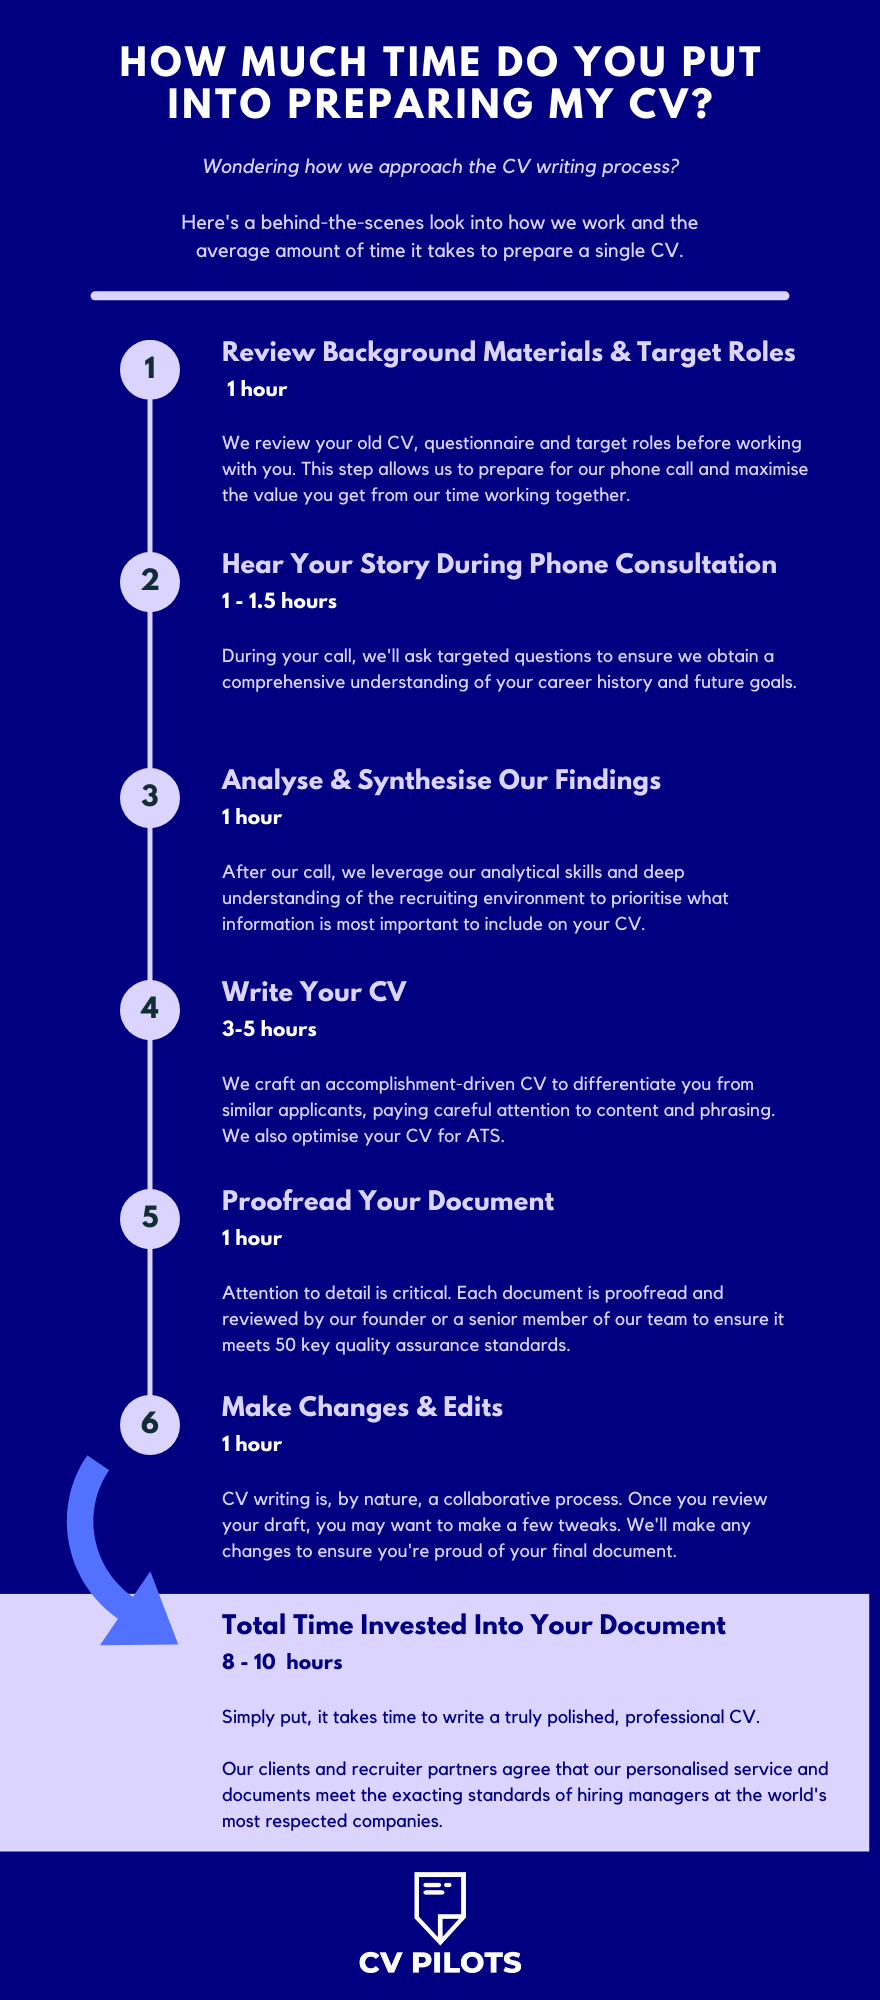 How Much Time Does It Take to Prepare a CV